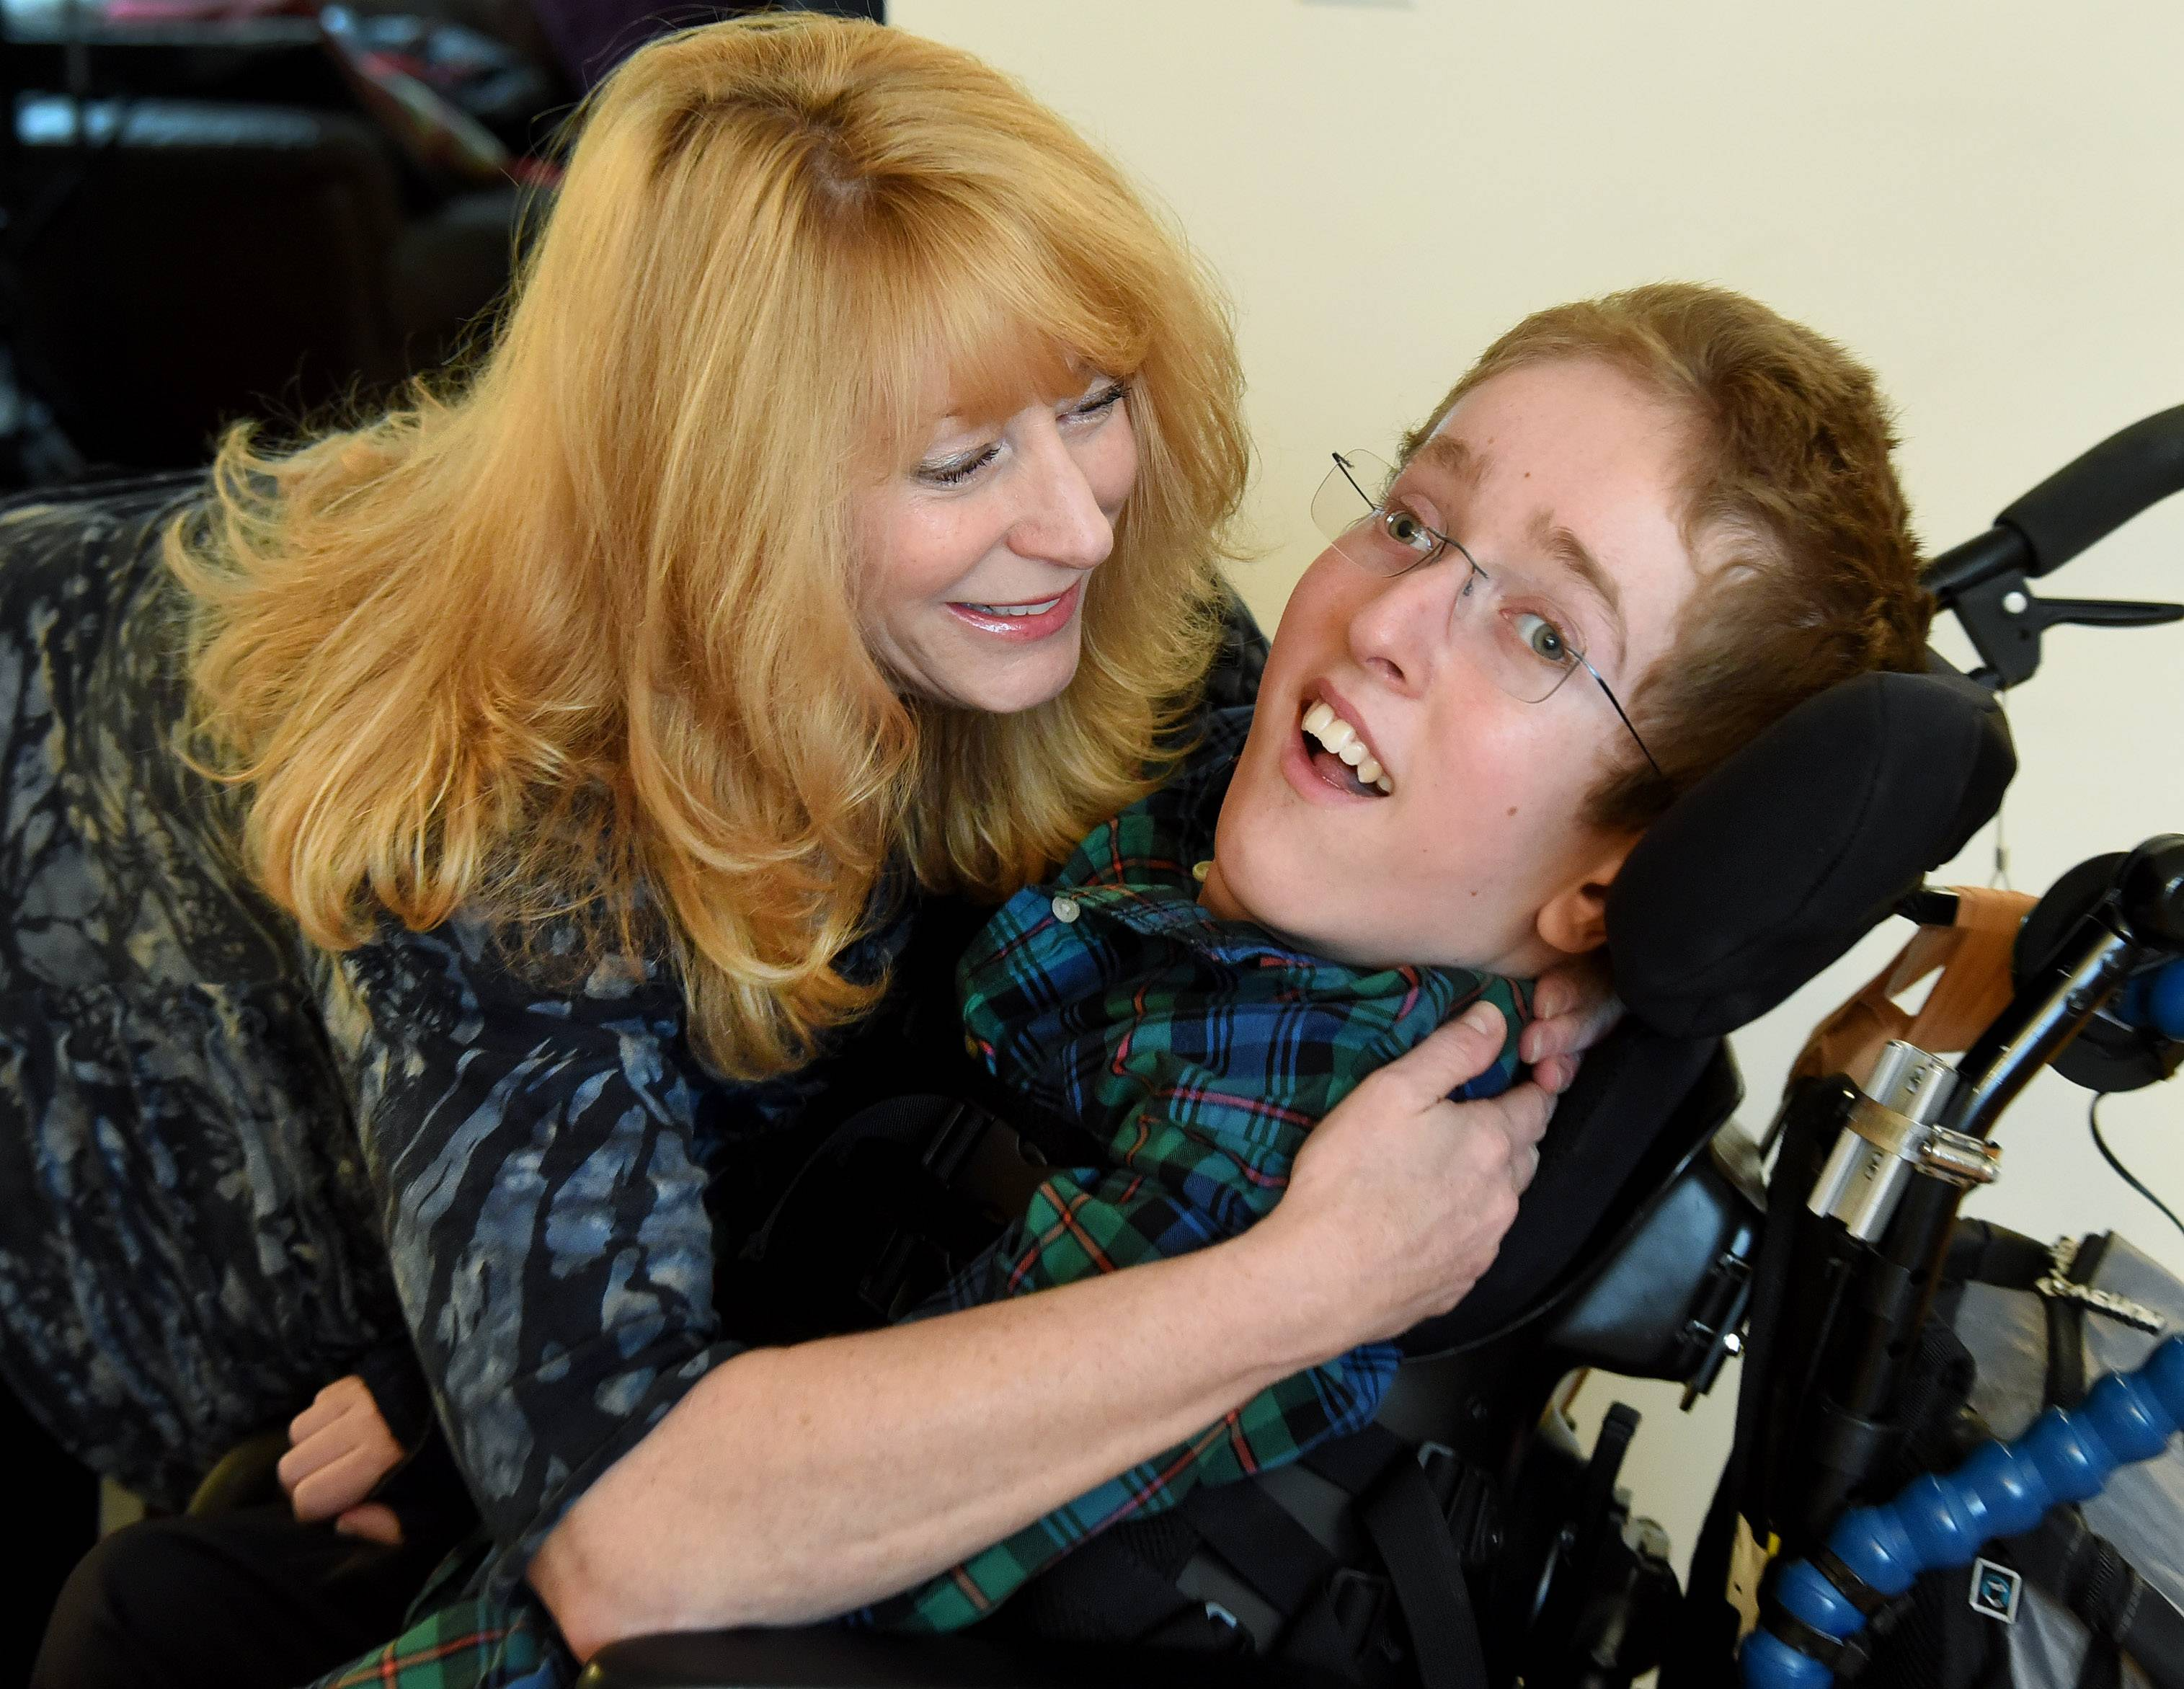 Ilyce Randell and her son Max Randell, who has Canavan disease.